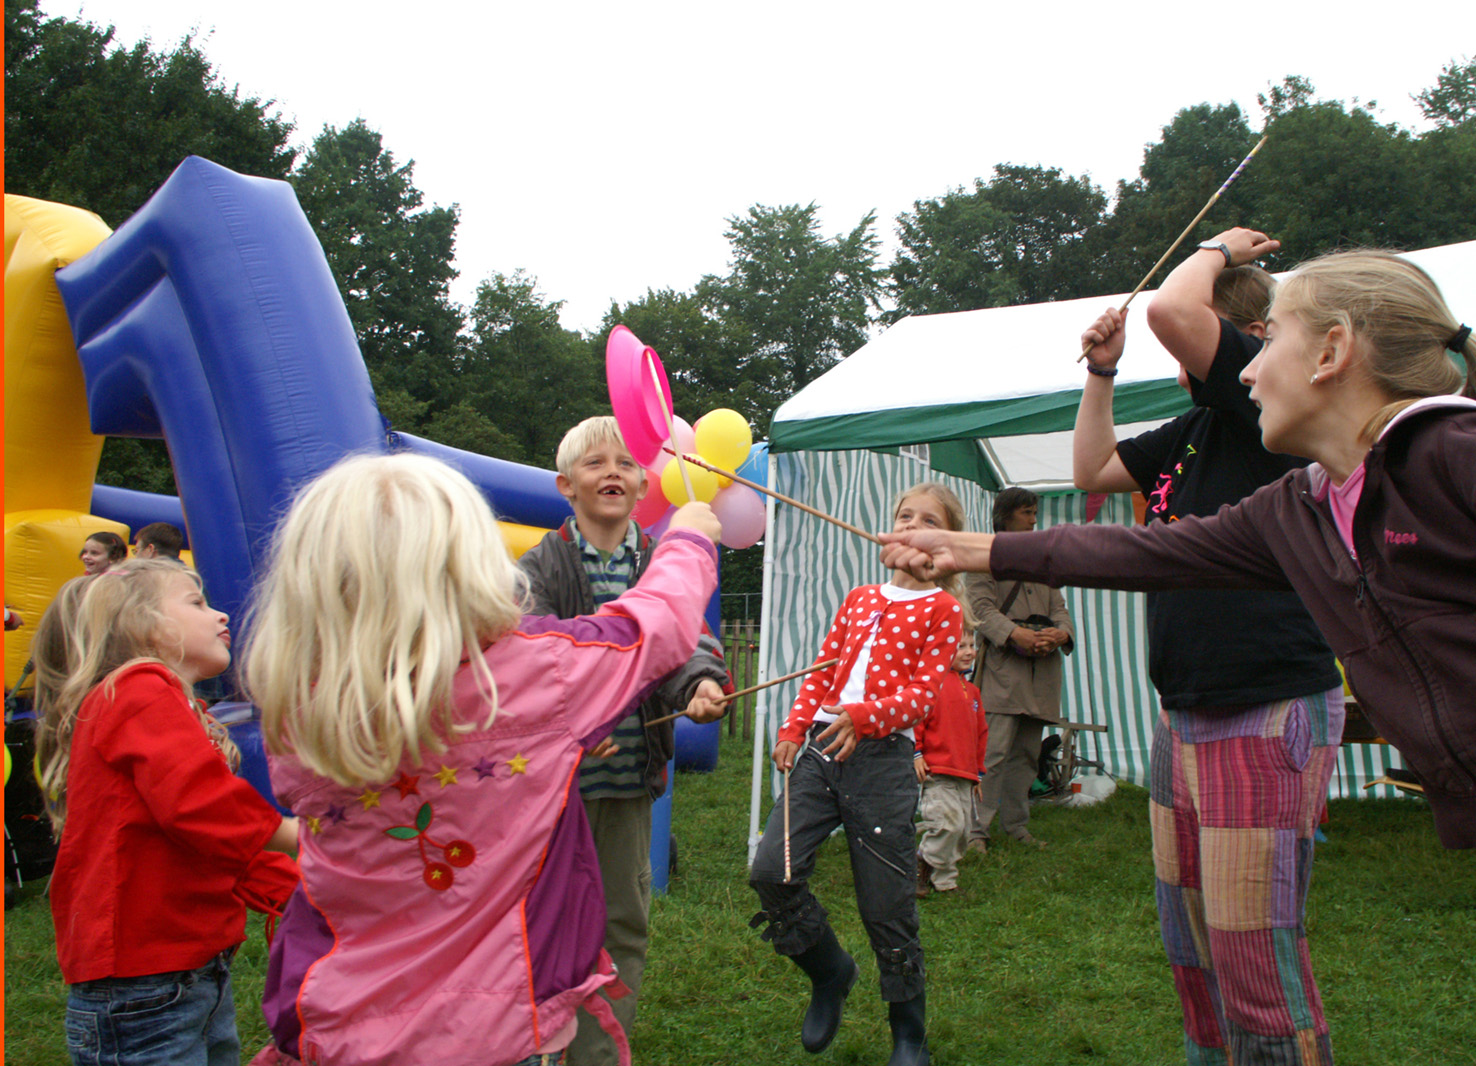 Workshop Borden - Open Piste Workshops Boerederijpop - Circus Kiko ism Circus Chiwawa